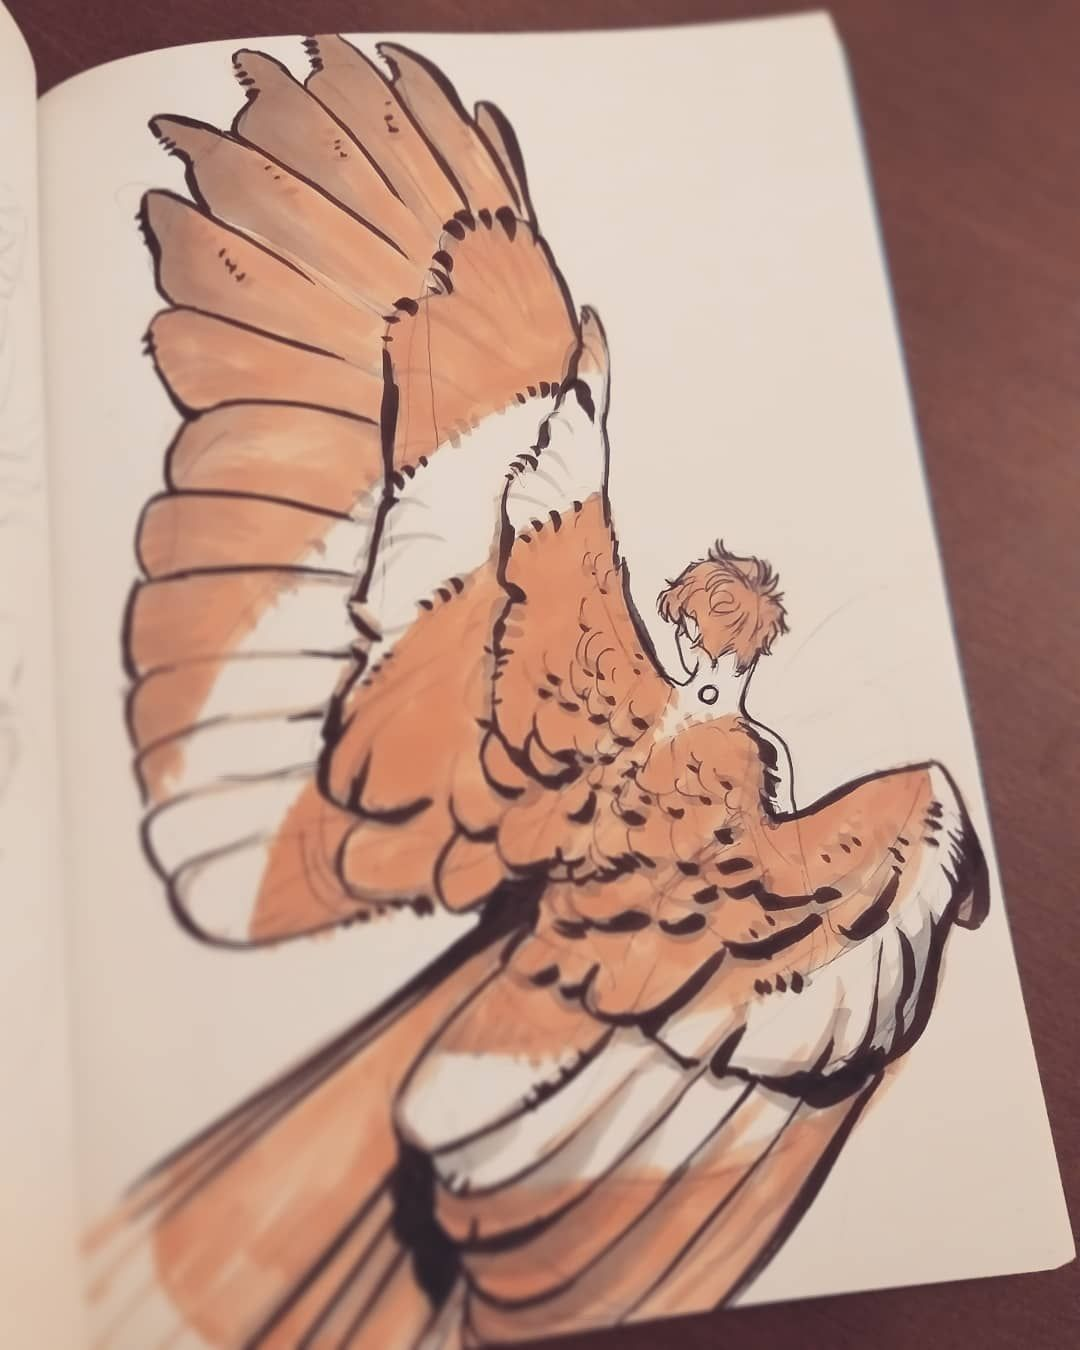 """Laura Pauselli on Instagram: """"Jeremy and his owl wings 💫 #character_design #wings #oc #fulemyocs #fulemyoc_jeremy #sketch #doodle #isia"""""""